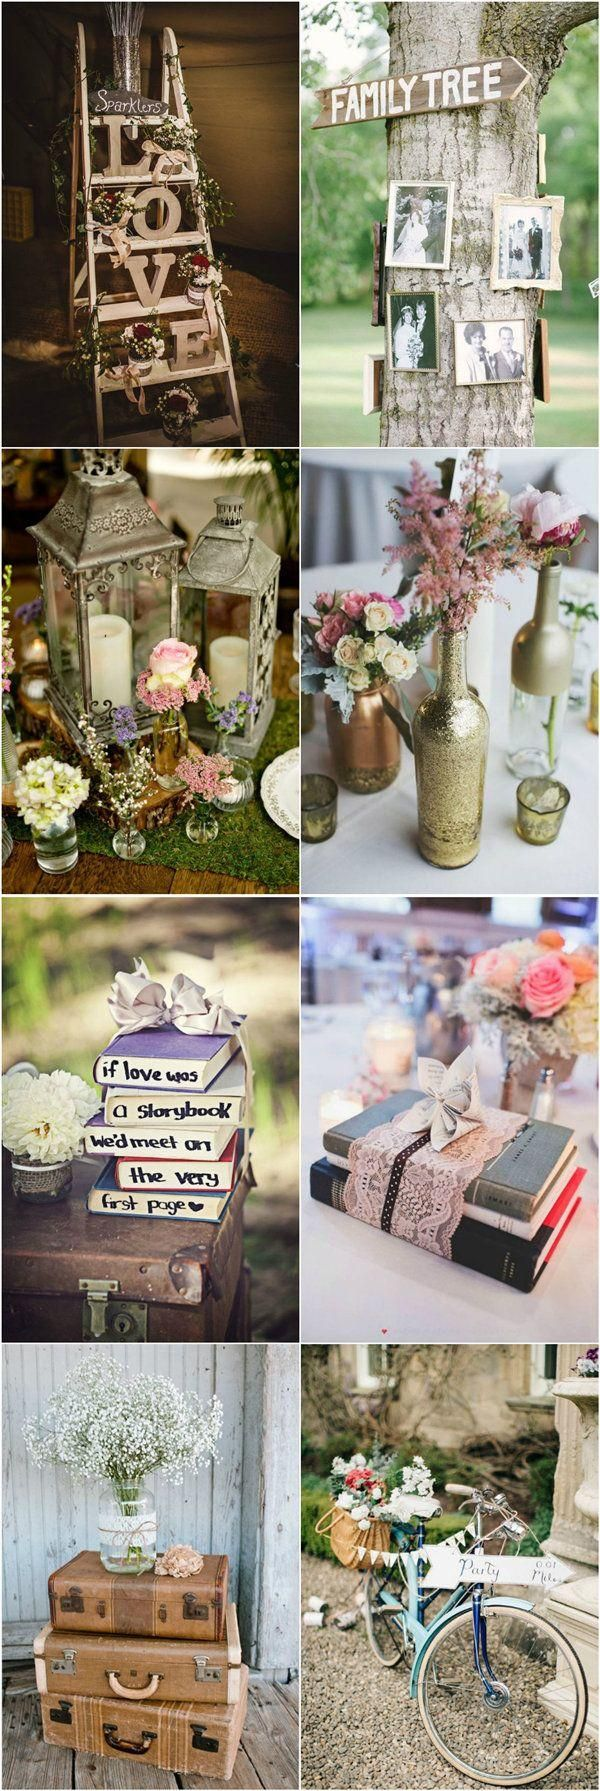 Are you looking forward to having a vintage wedding? A vintage themed wedding is timeless, beautiful and totally unique